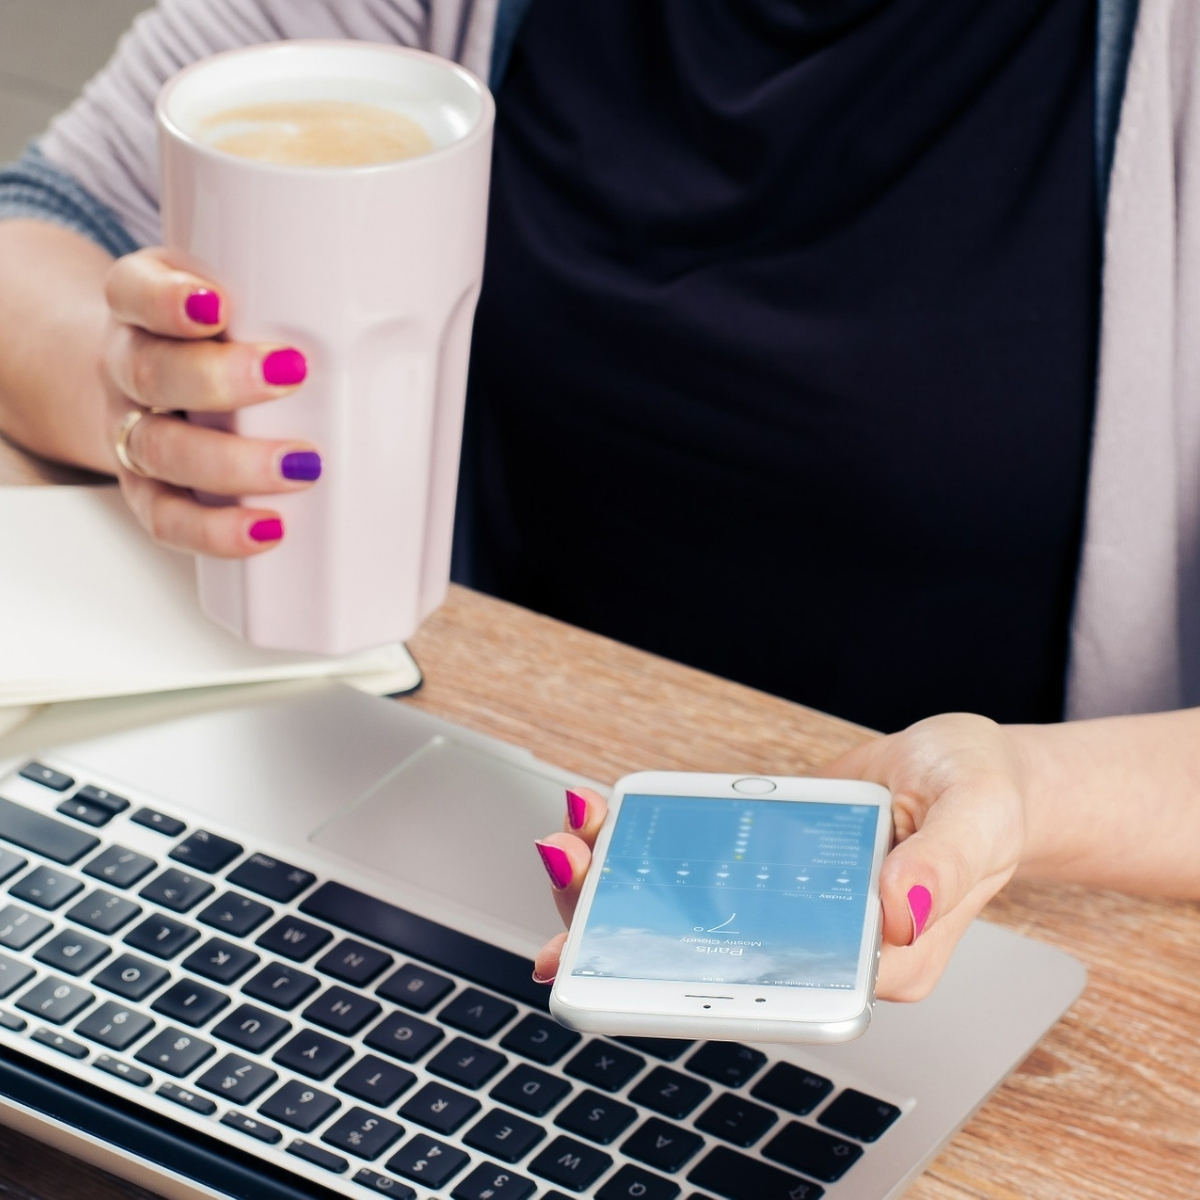 lady working at desk with a cup of coffee in hand and smartphone